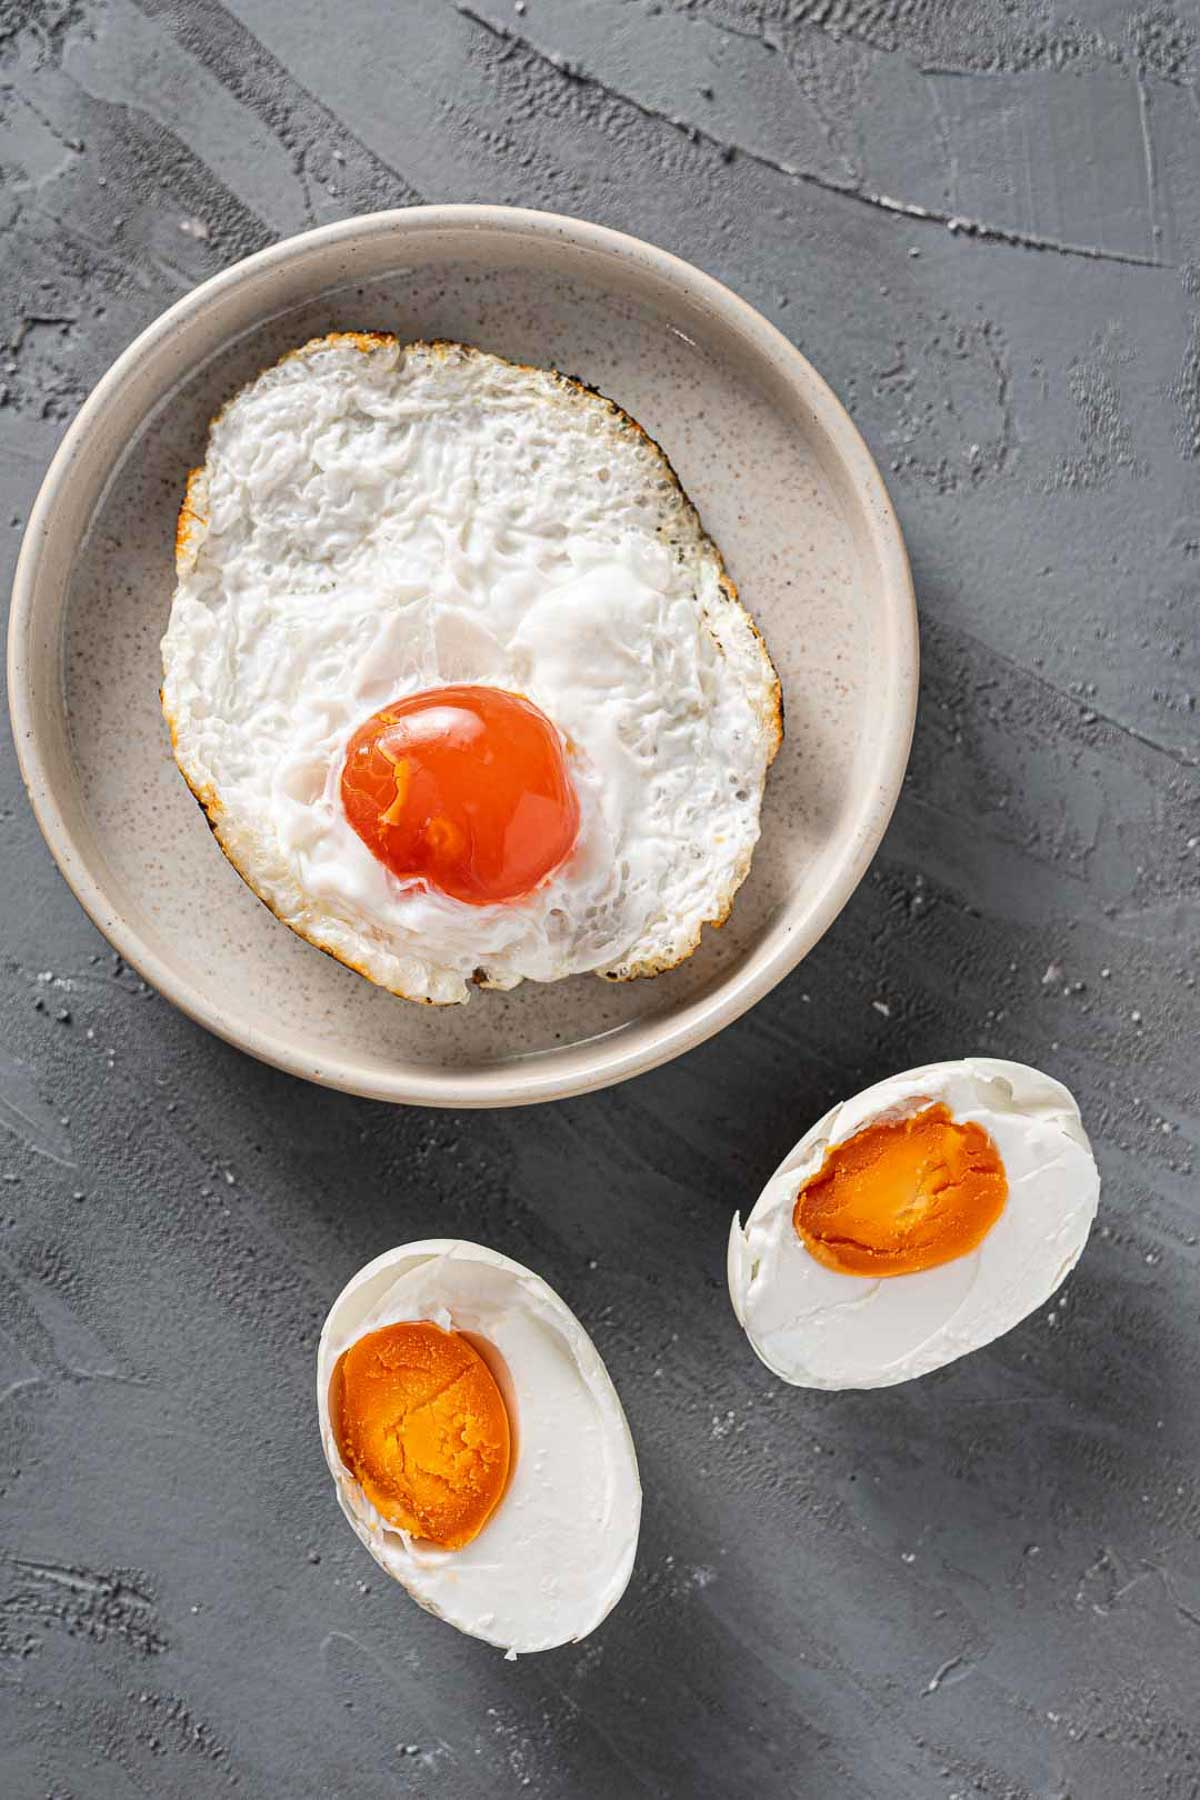 fried and boiled salted eggs on a gray surface